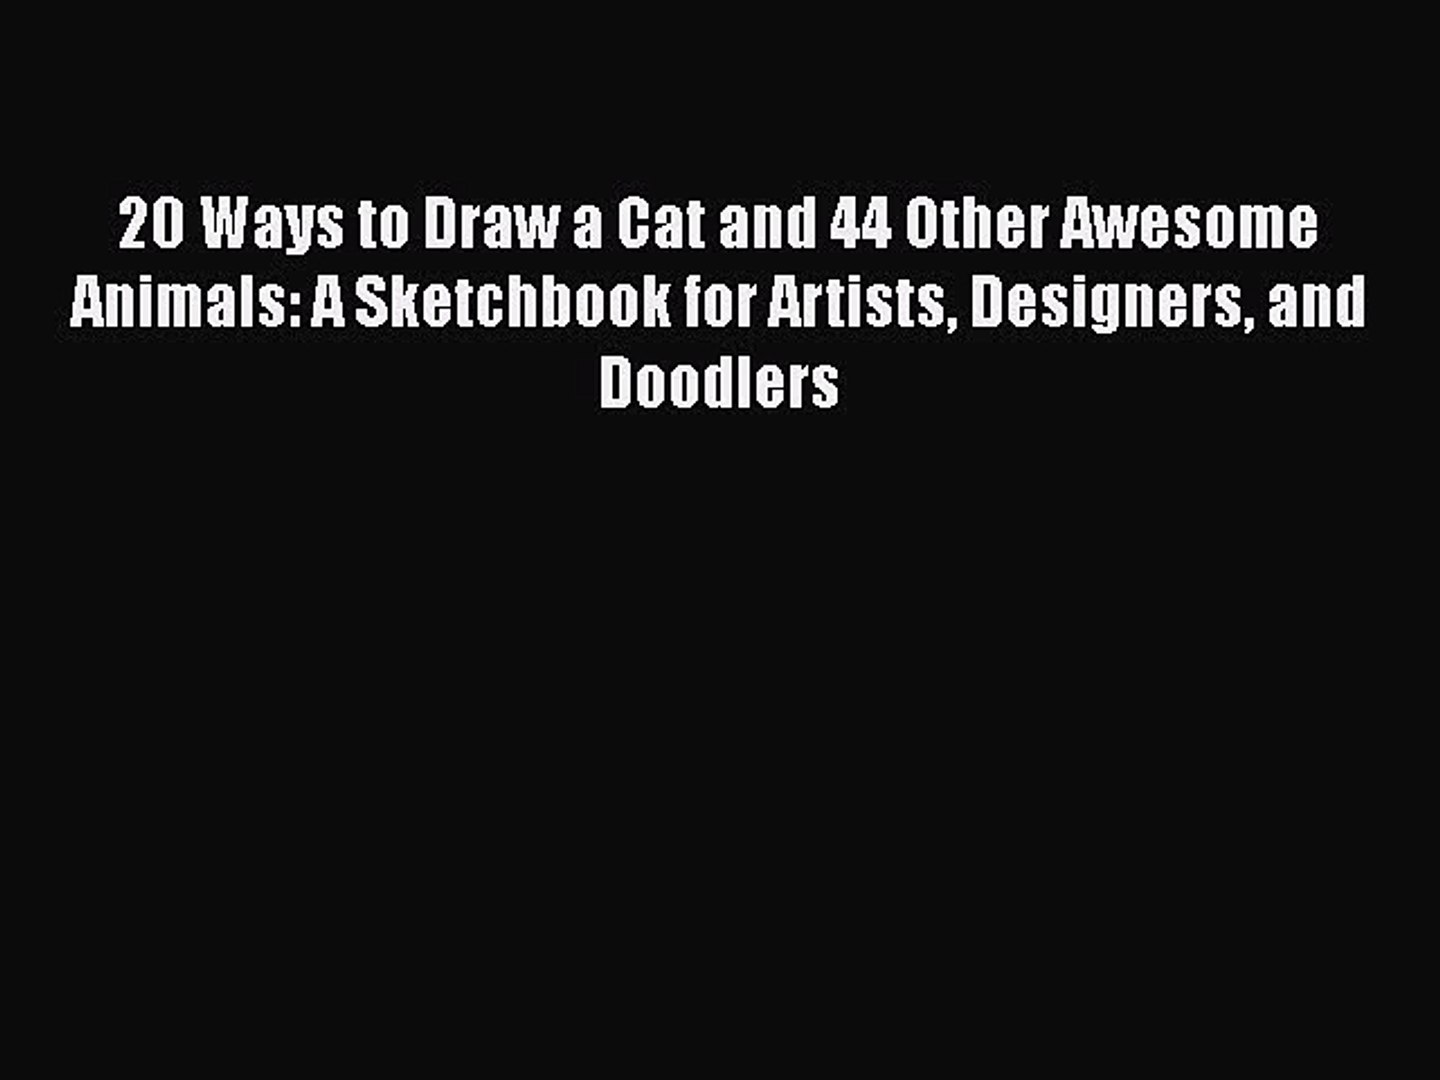 20 Ways to Draw a Cat and 44 Other Awesome Animals and Doodlers Designers A Sketchbook for Artists